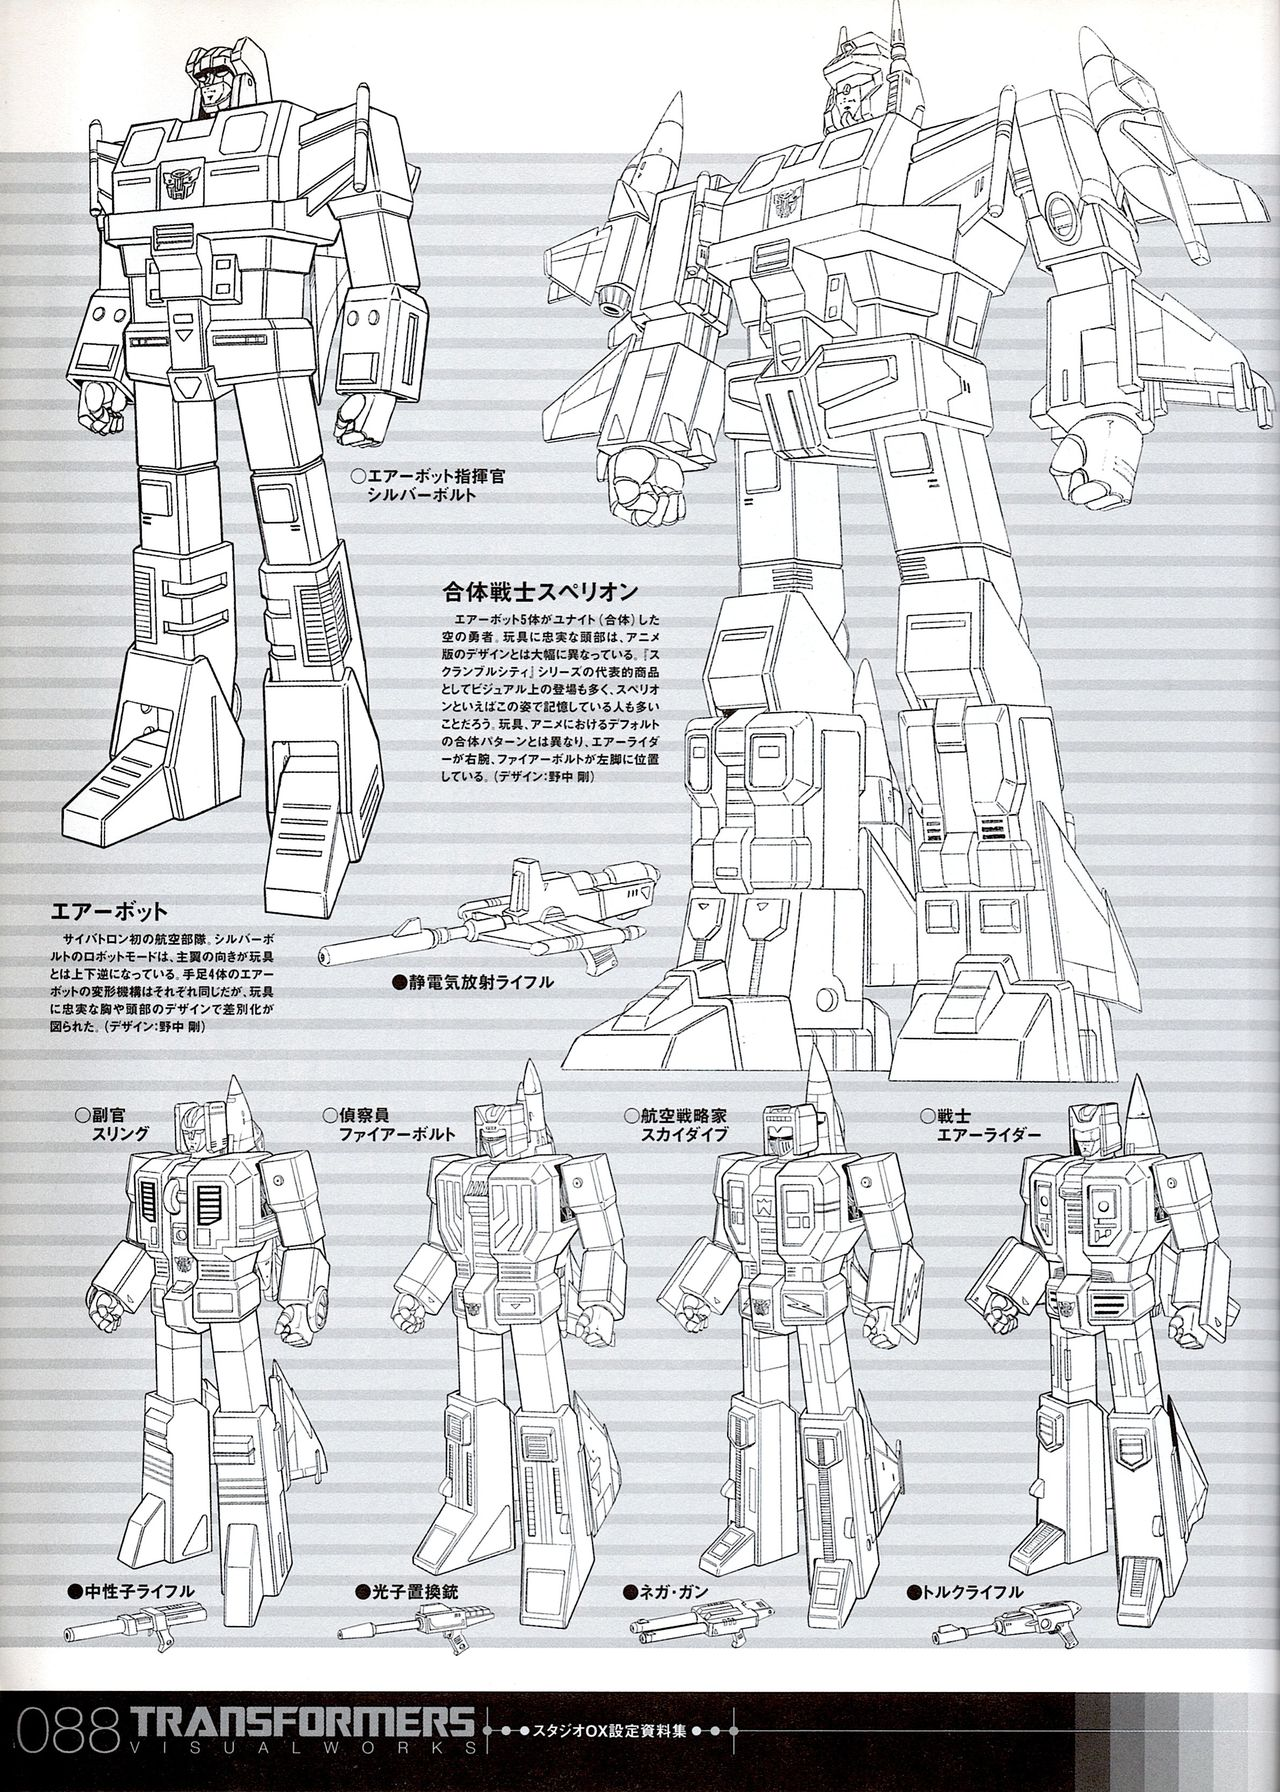 Transformers_Visual_Works_88.jpg